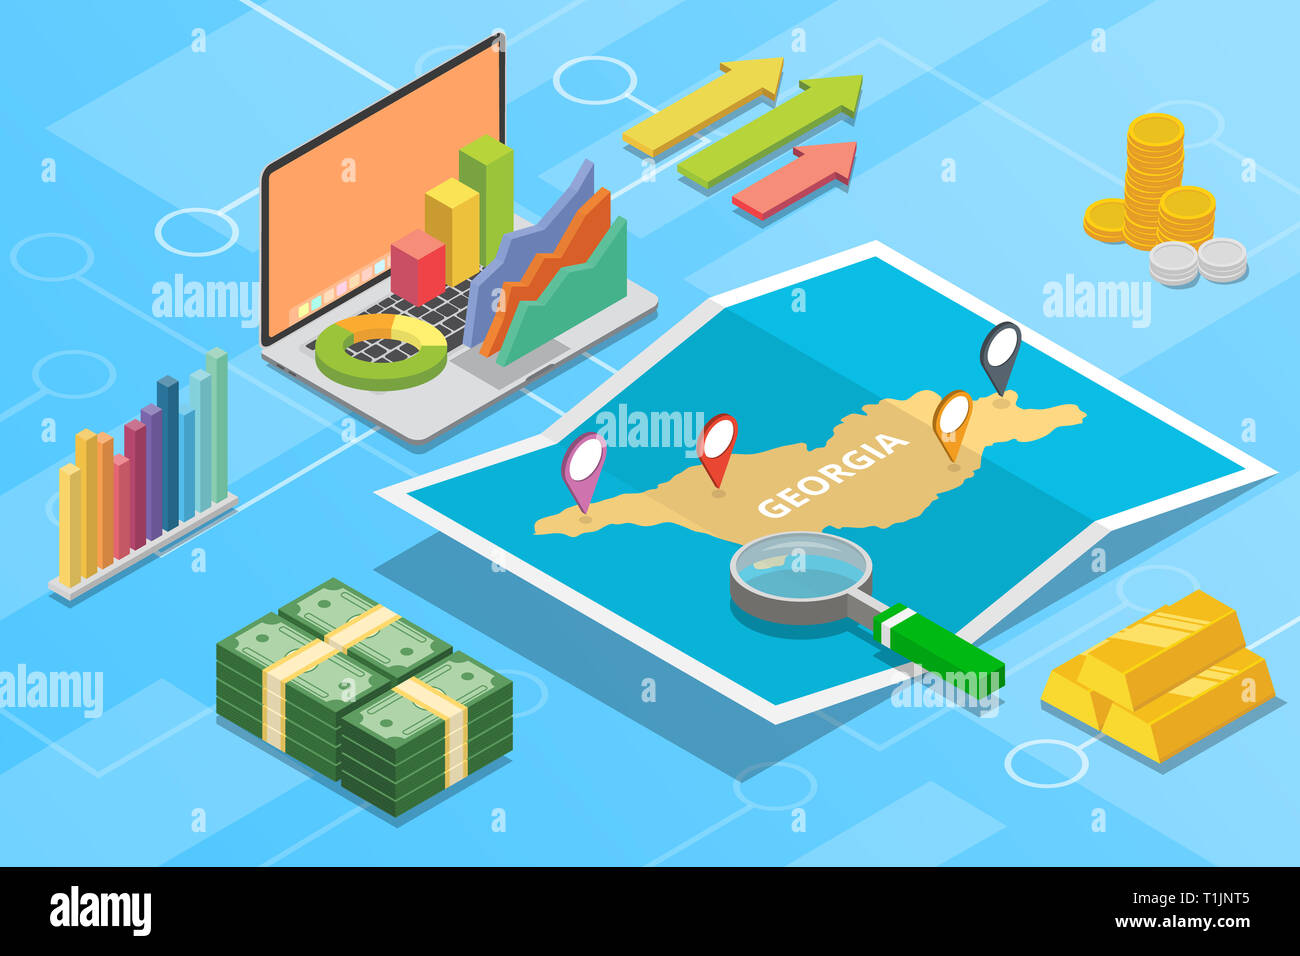 georgia isometric business economy growth country with map and finance condition - vector - Stock Image